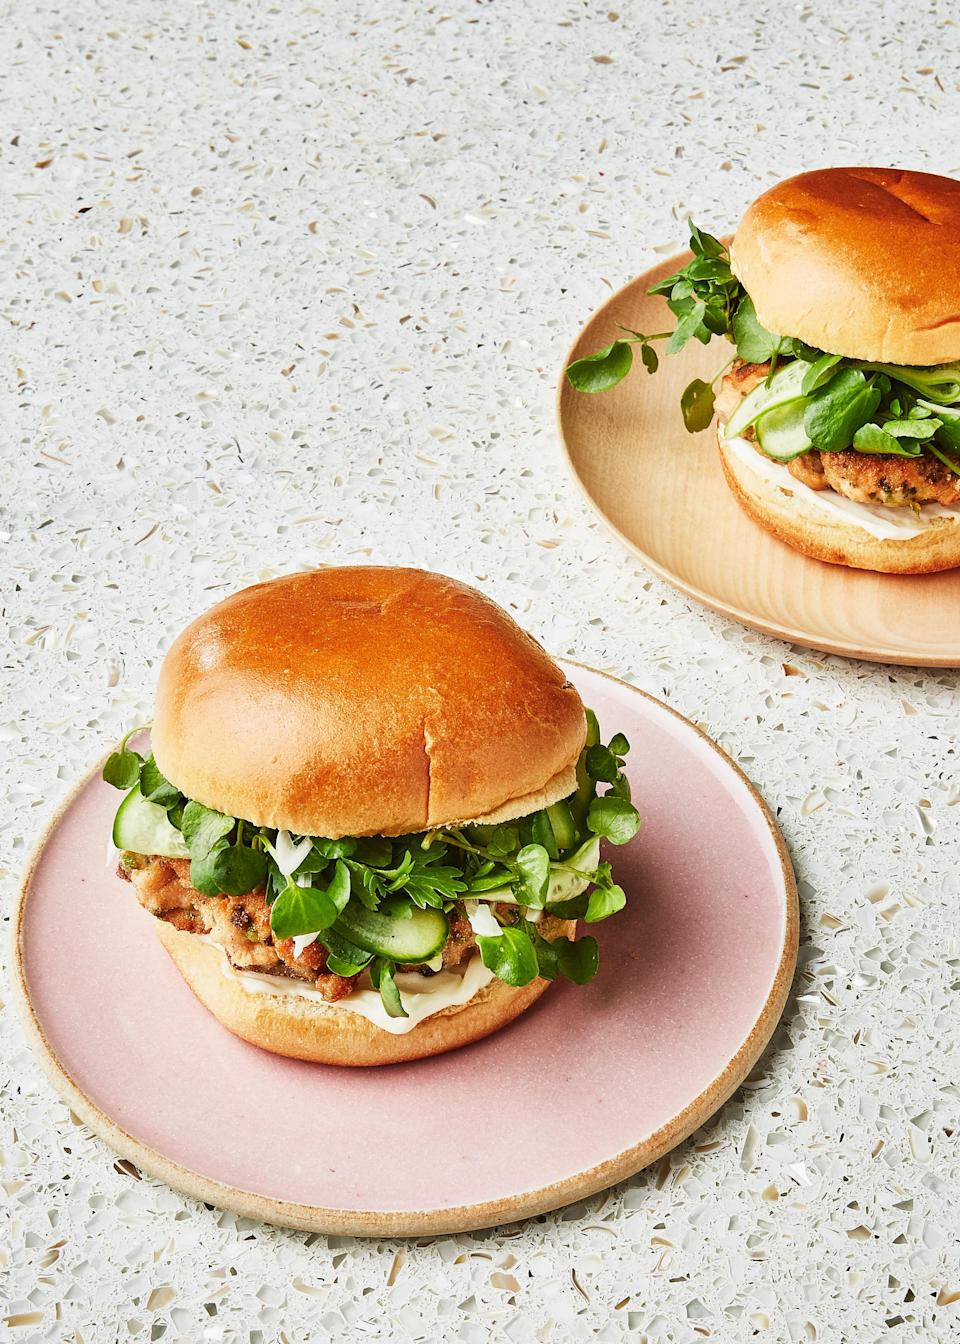 "The food processor is your friend when making these salmon burgers, but the key is to make sure the salmon isn't too smooth when processing so the patties can hold their shape. <a href=""https://www.bonappetit.com/recipe/salmon-burgers-with-pickled-cucumbers-and-watercress?mbid=synd_yahoo_rss"" rel=""nofollow noopener"" target=""_blank"" data-ylk=""slk:See recipe."" class=""link rapid-noclick-resp"">See recipe.</a>"